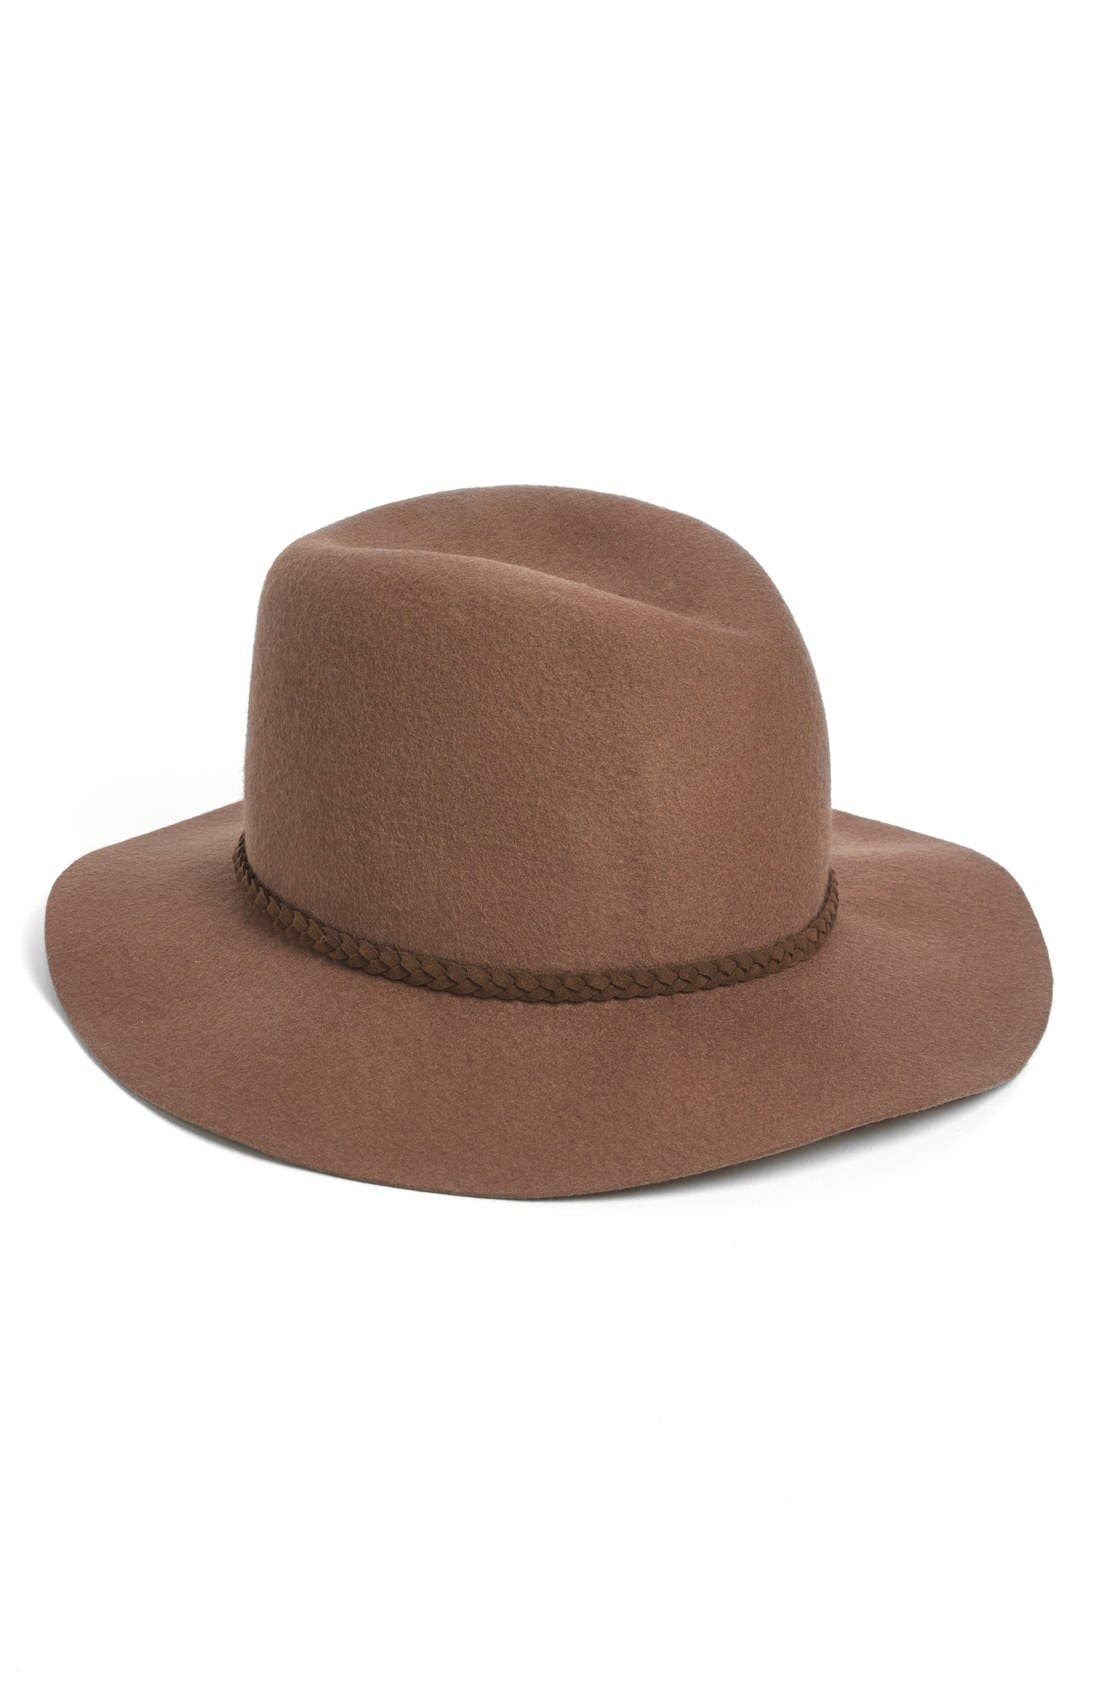 Felt Panama Hat,                         Main,                         color, Walnut